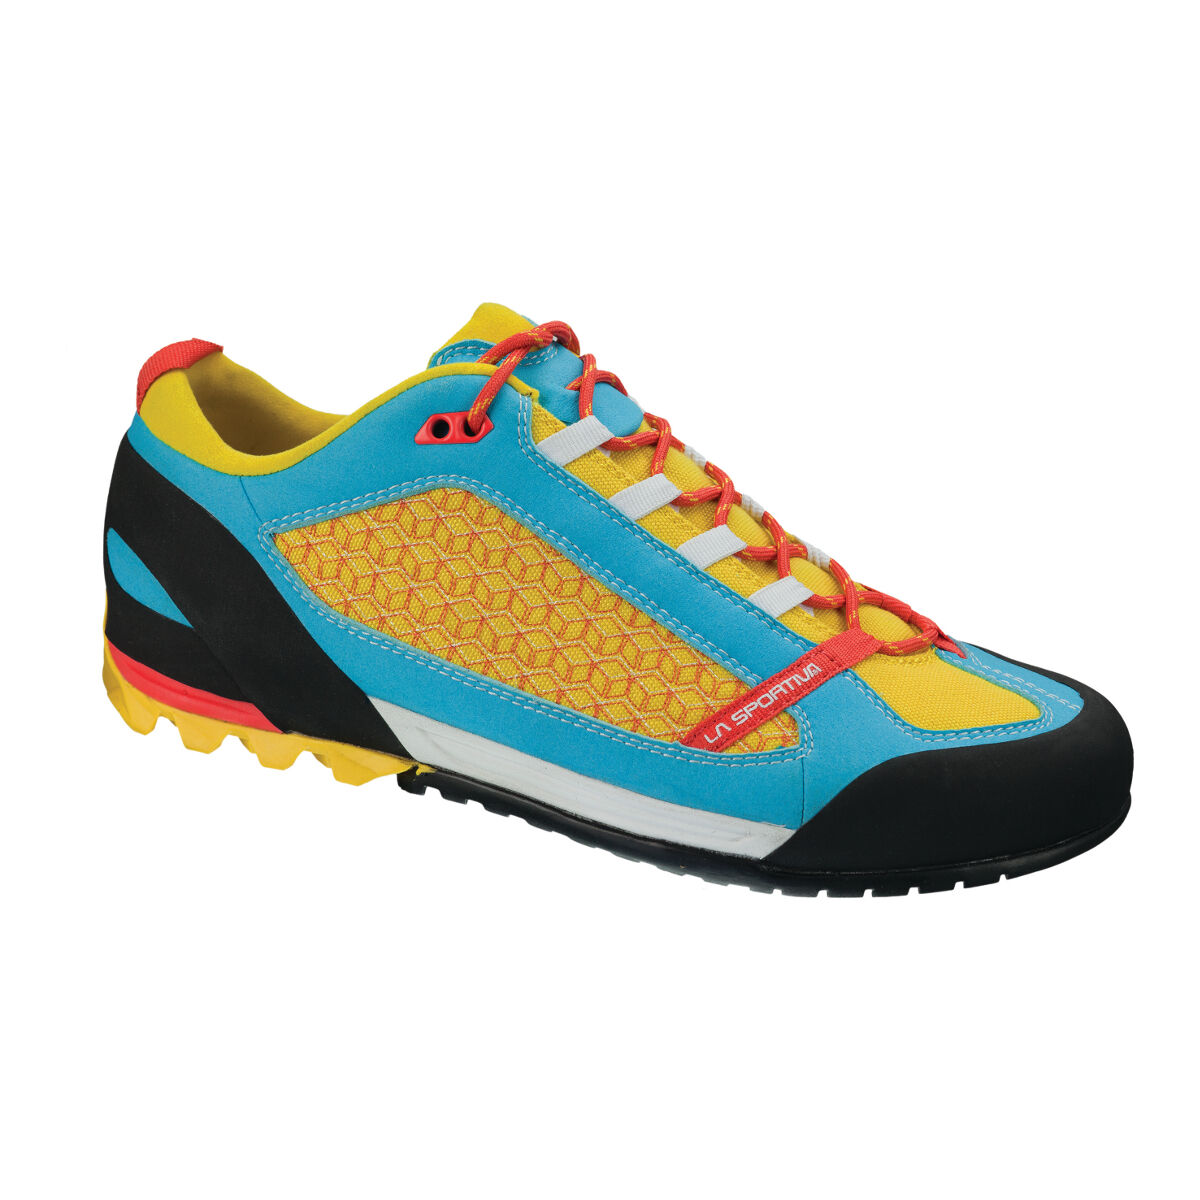 La Sportiva damen Scratch Trail Running Hiking schuhe (38) Malibu Blau